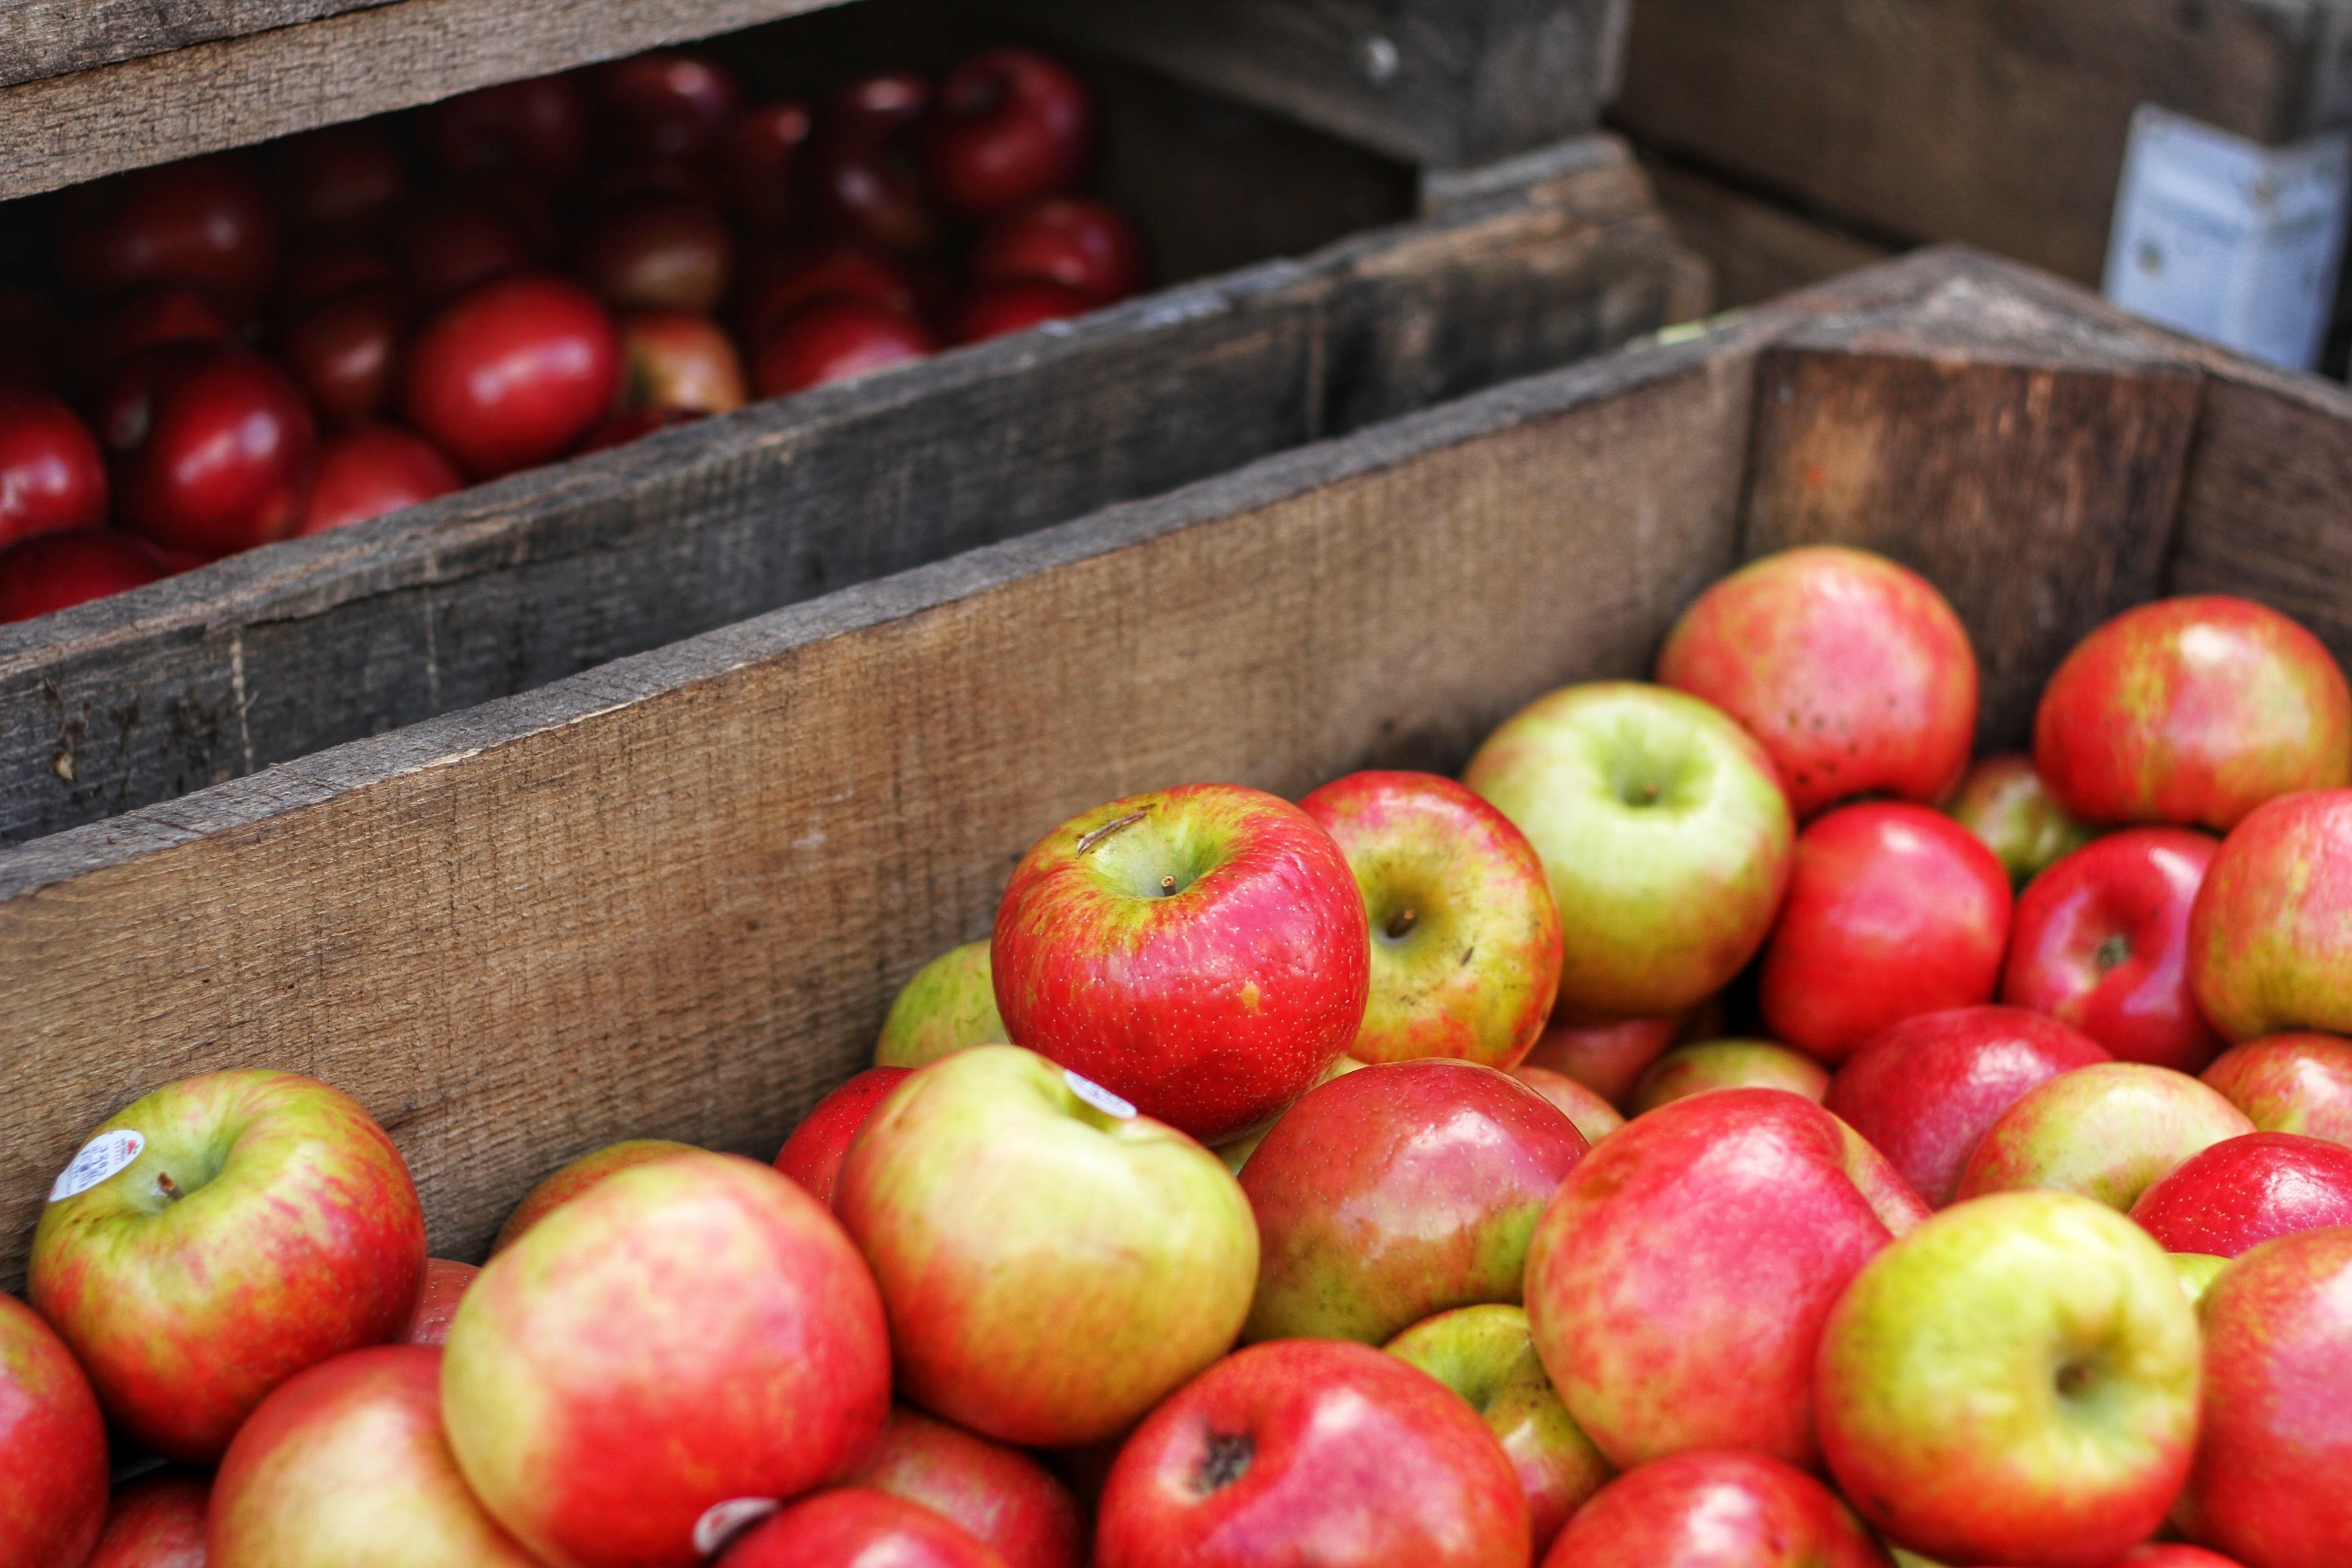 Red-and-green Apples in Brown Wooden Box